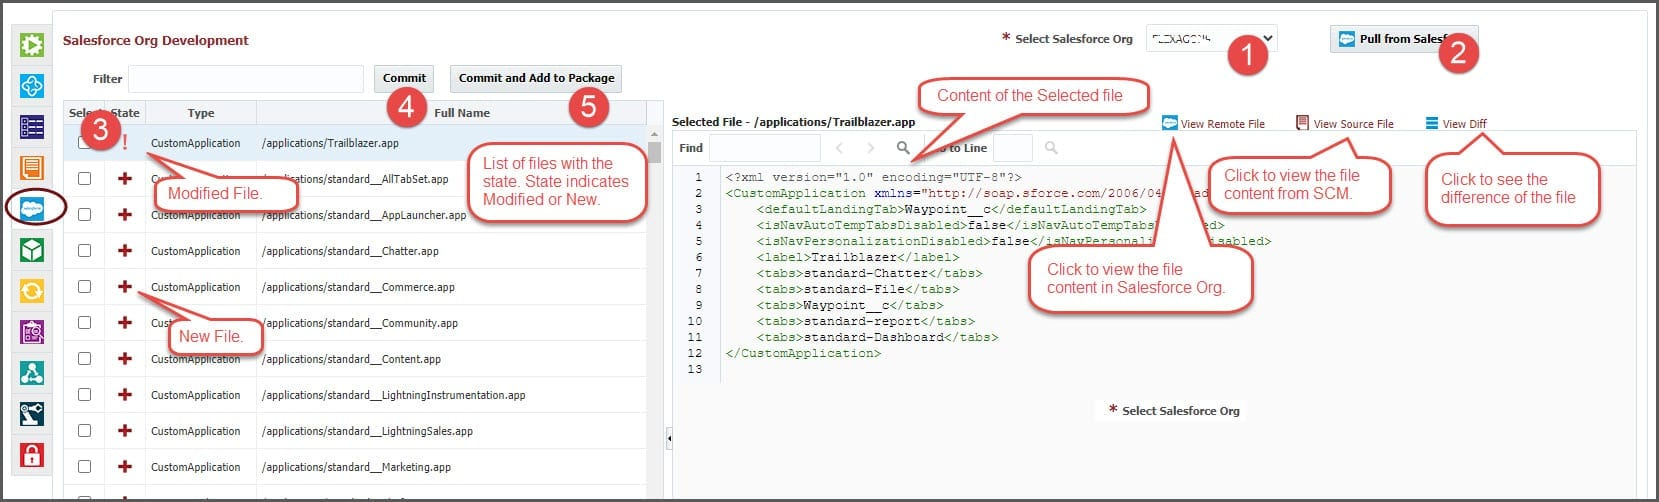 Select the Salesforce Org and retrieves the changes in the Salesforce Org Development tab of FlexDeploy.